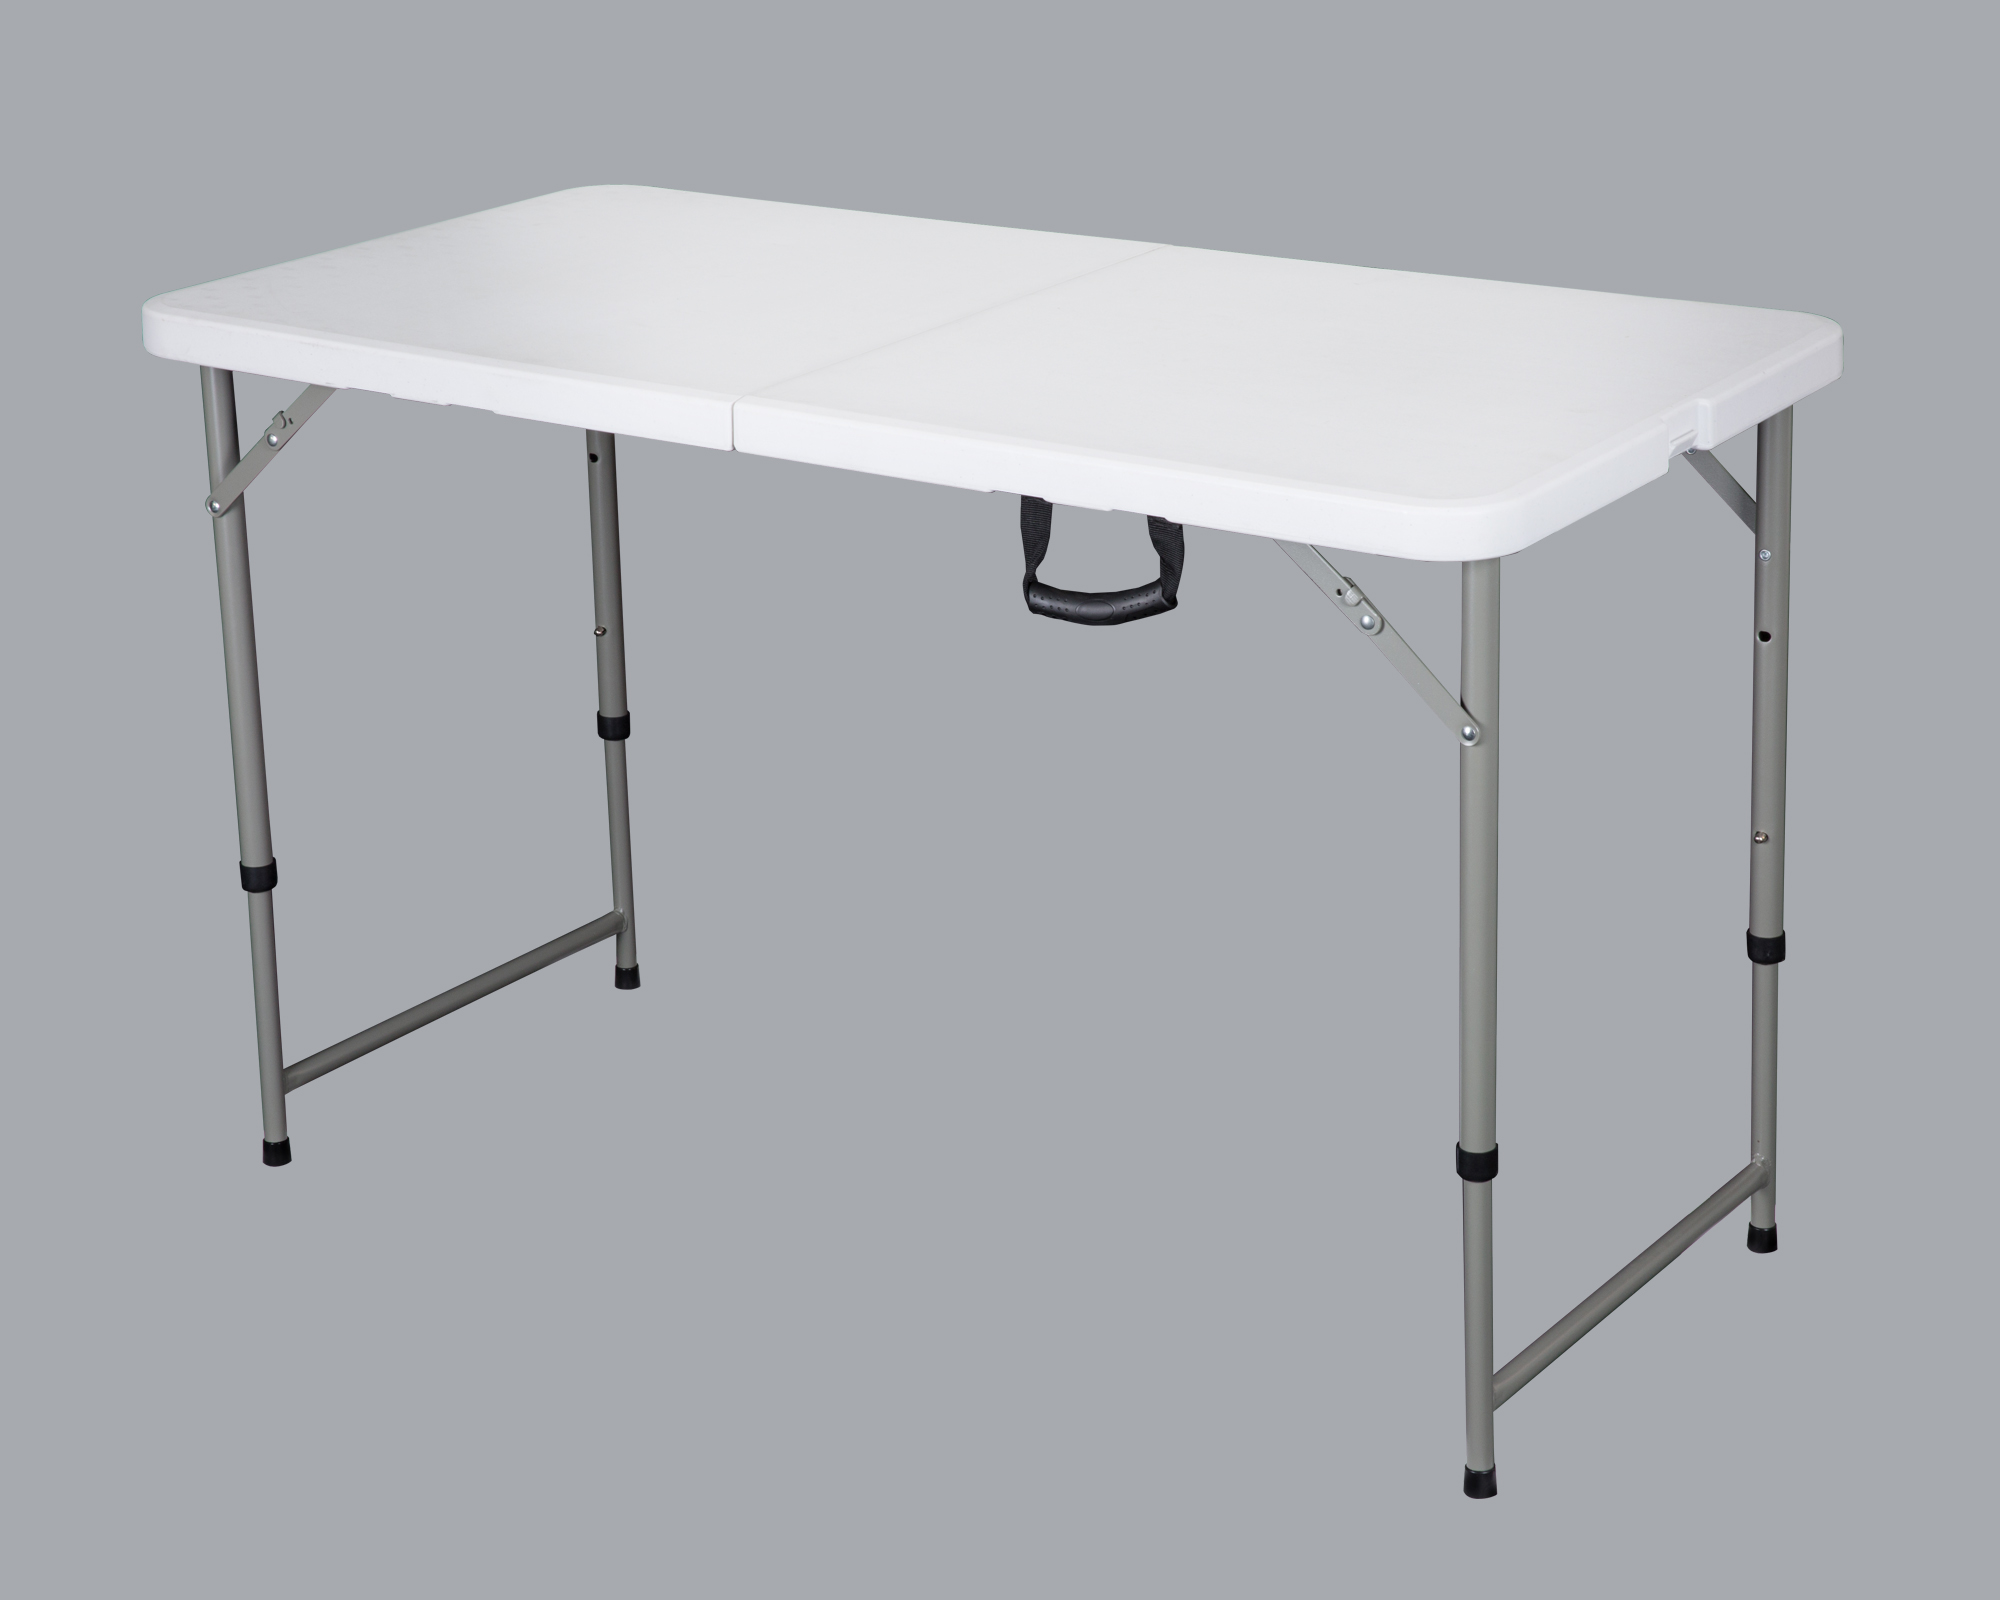 183cm Foldaway Resin Table